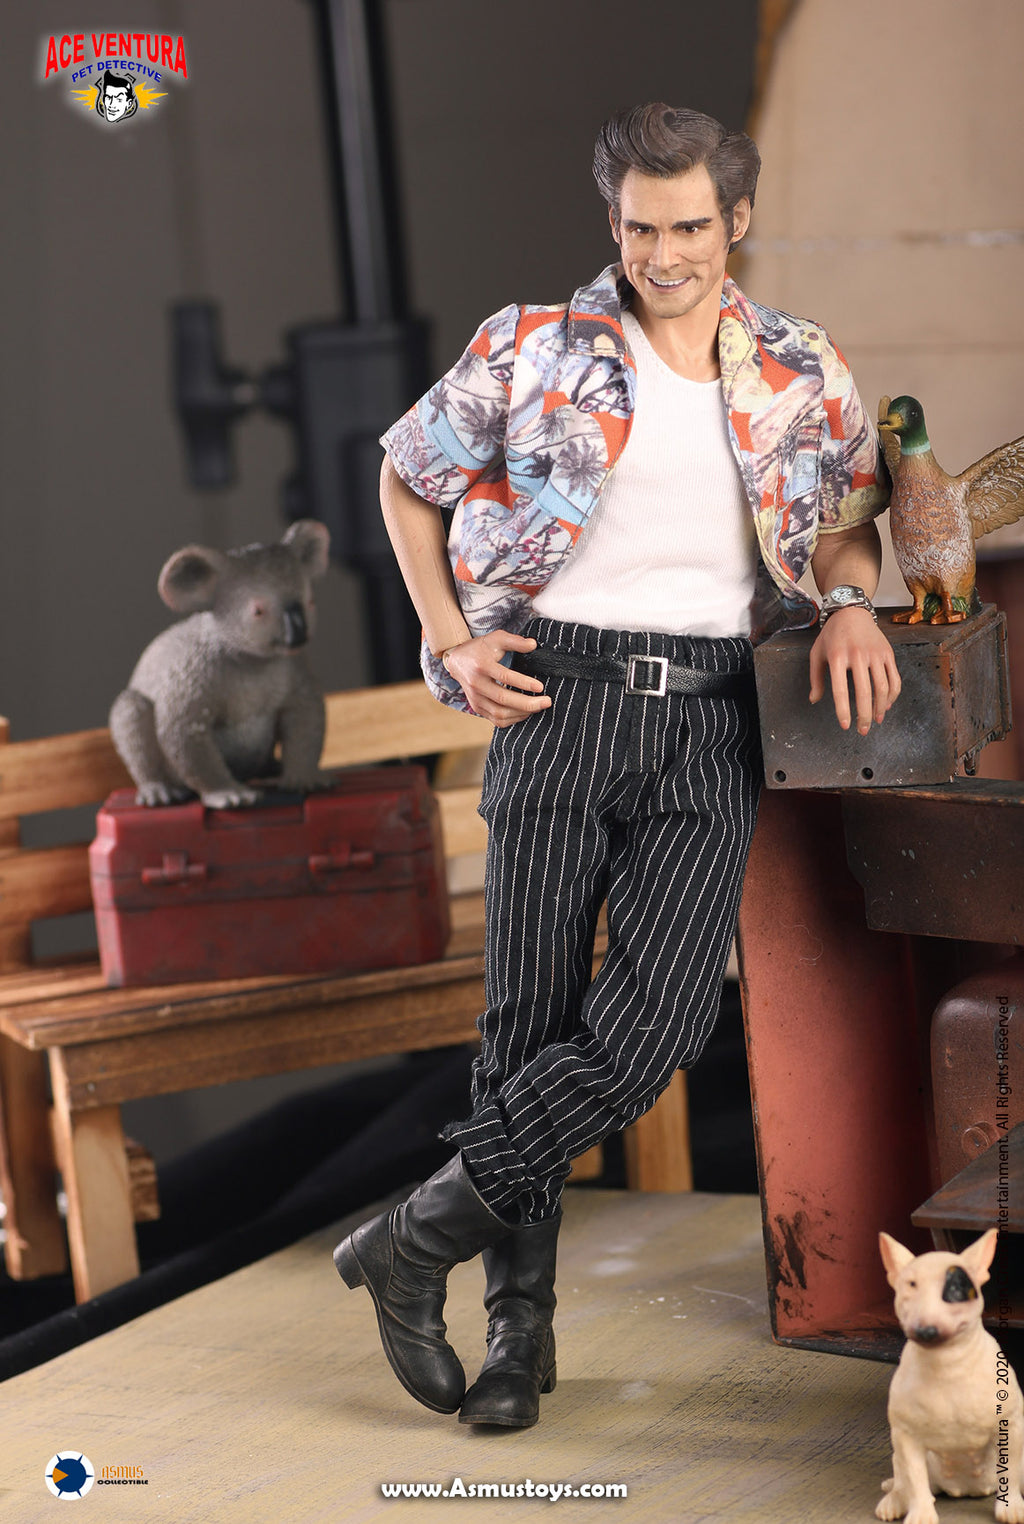 PREORDER - Ace Ventura - MINT IN BOX